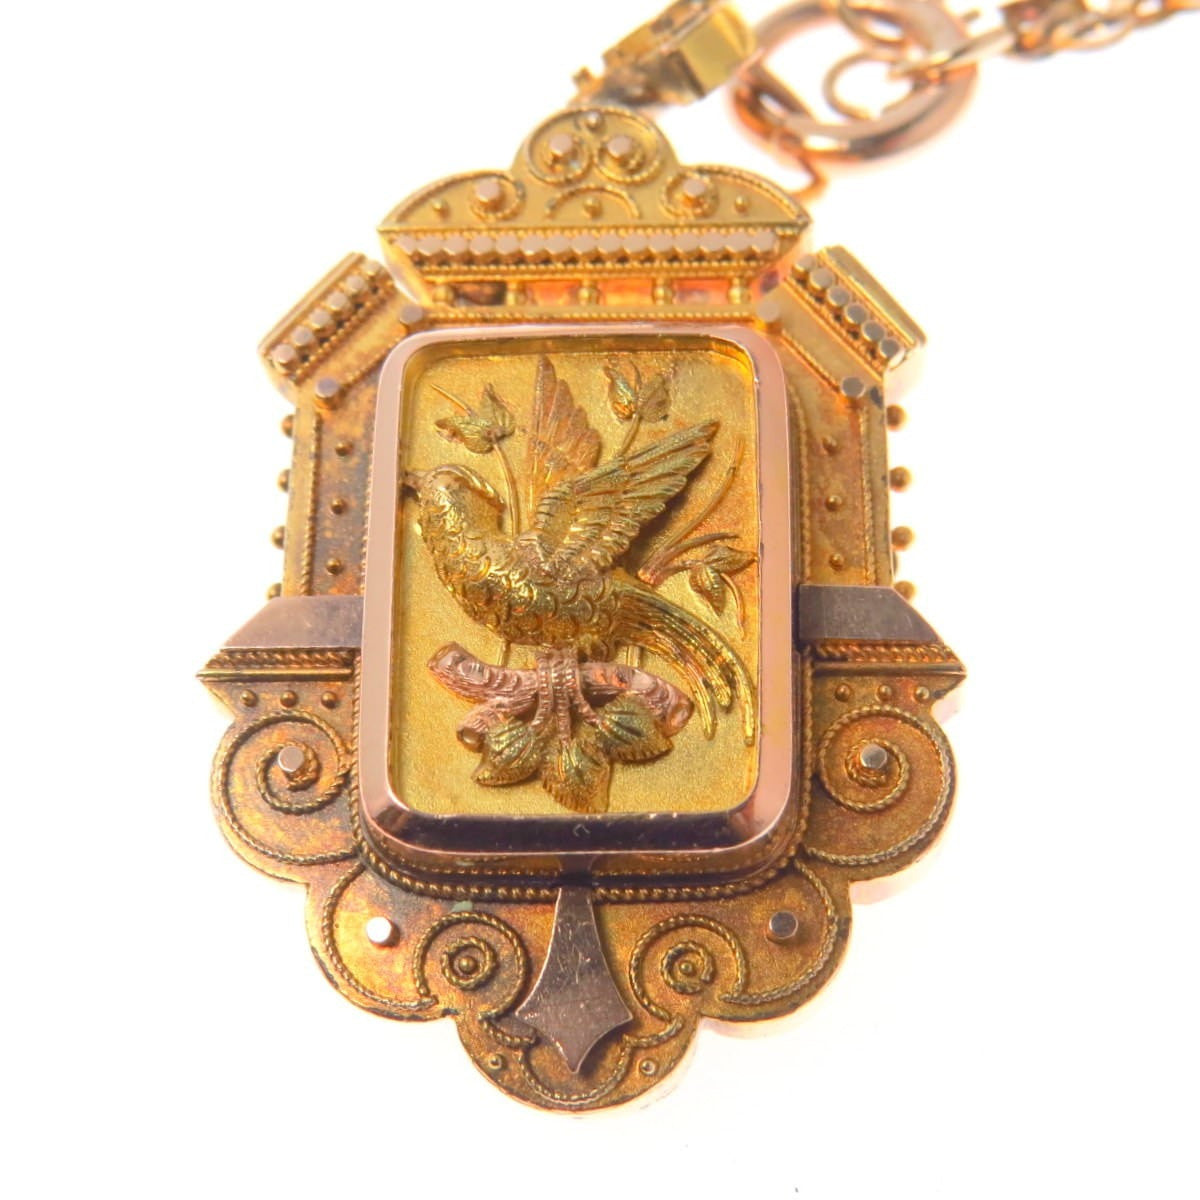 rosywl diamond wj charm edwardian square monogram rose images starburst victorian pinterest fob on locket gold watch best solid lockets